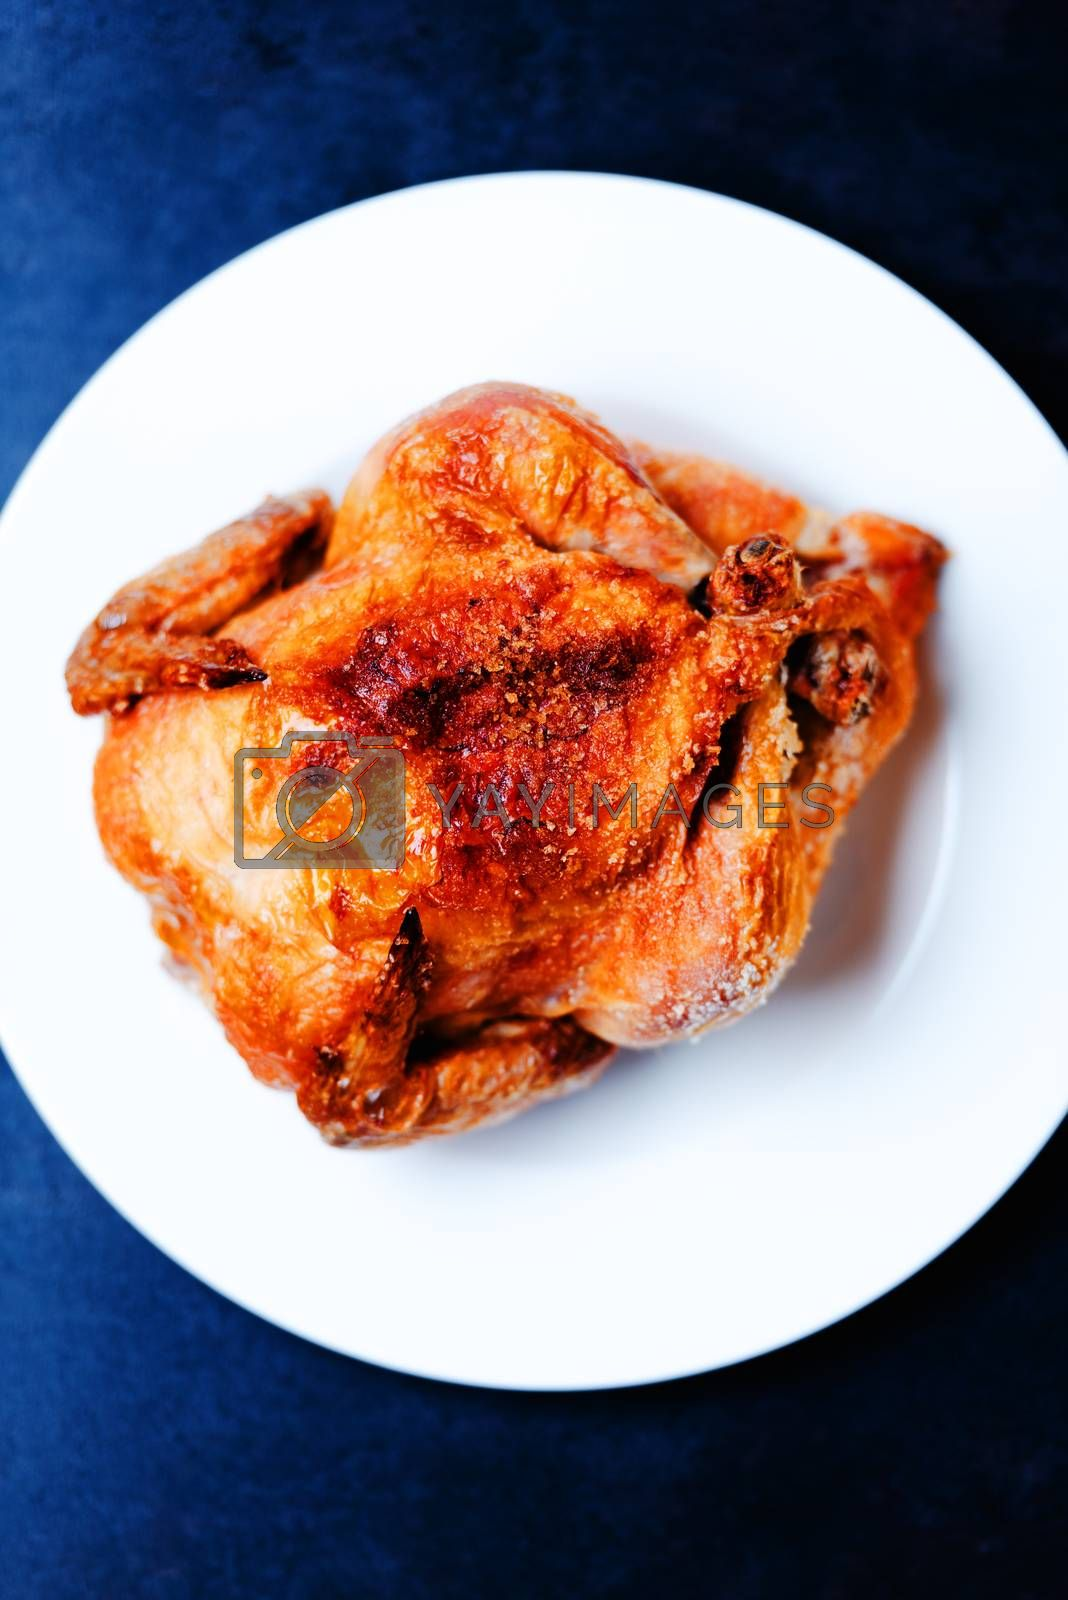 Whole oven roasted chicken on white plate